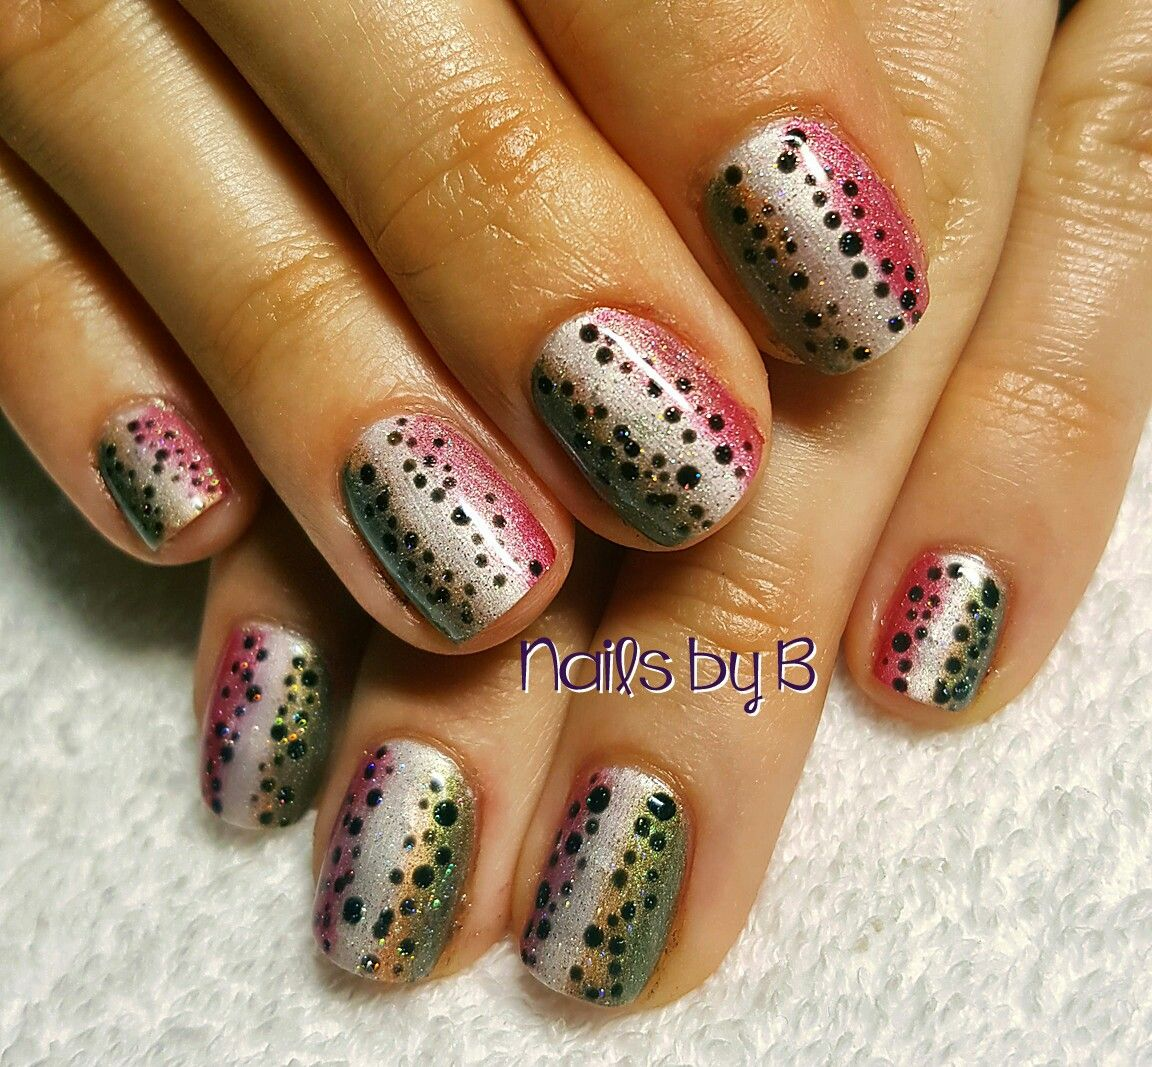 Rainbow Trout Nails Nails by B, Eugene Oregon | Nails by B That\'s Me ...